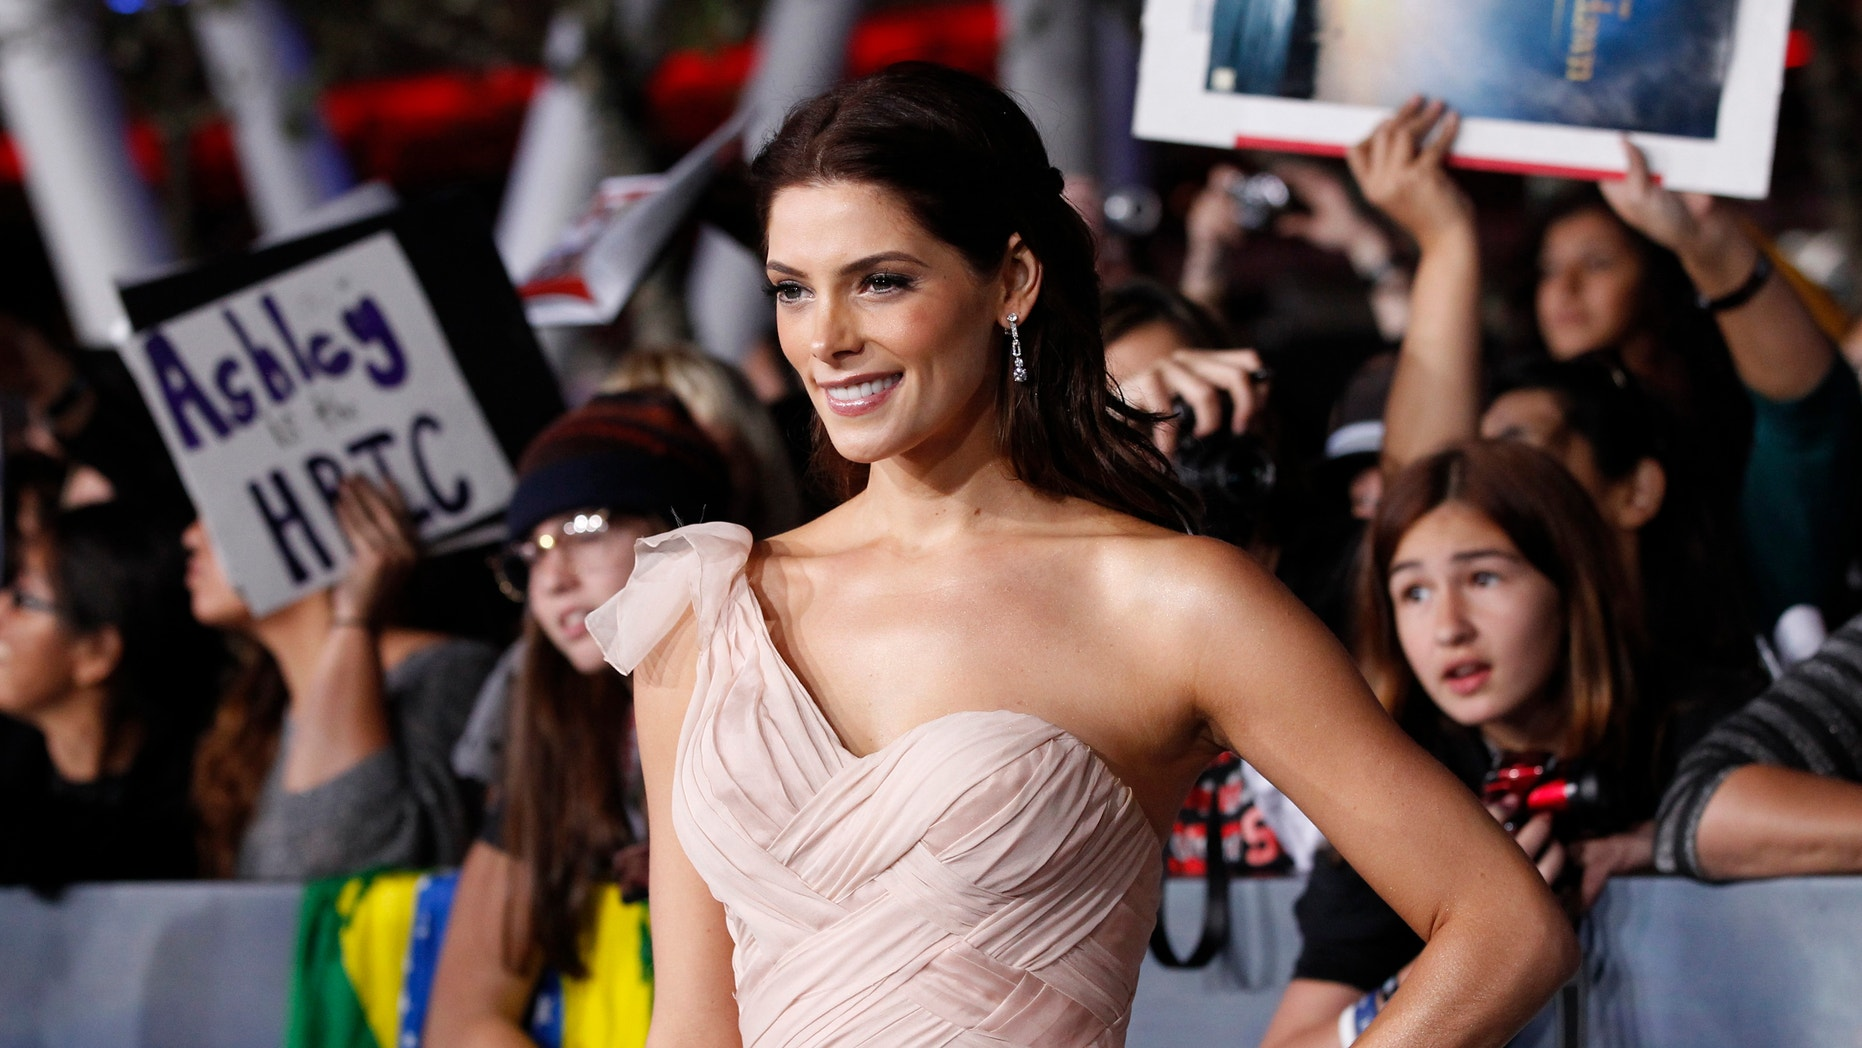 """Cast member Ashley Greene poses at the premiere of """"The Twilight Saga: Breaking Dawn - Part 2"""" in Los Angeles, California, November 12, 2012."""